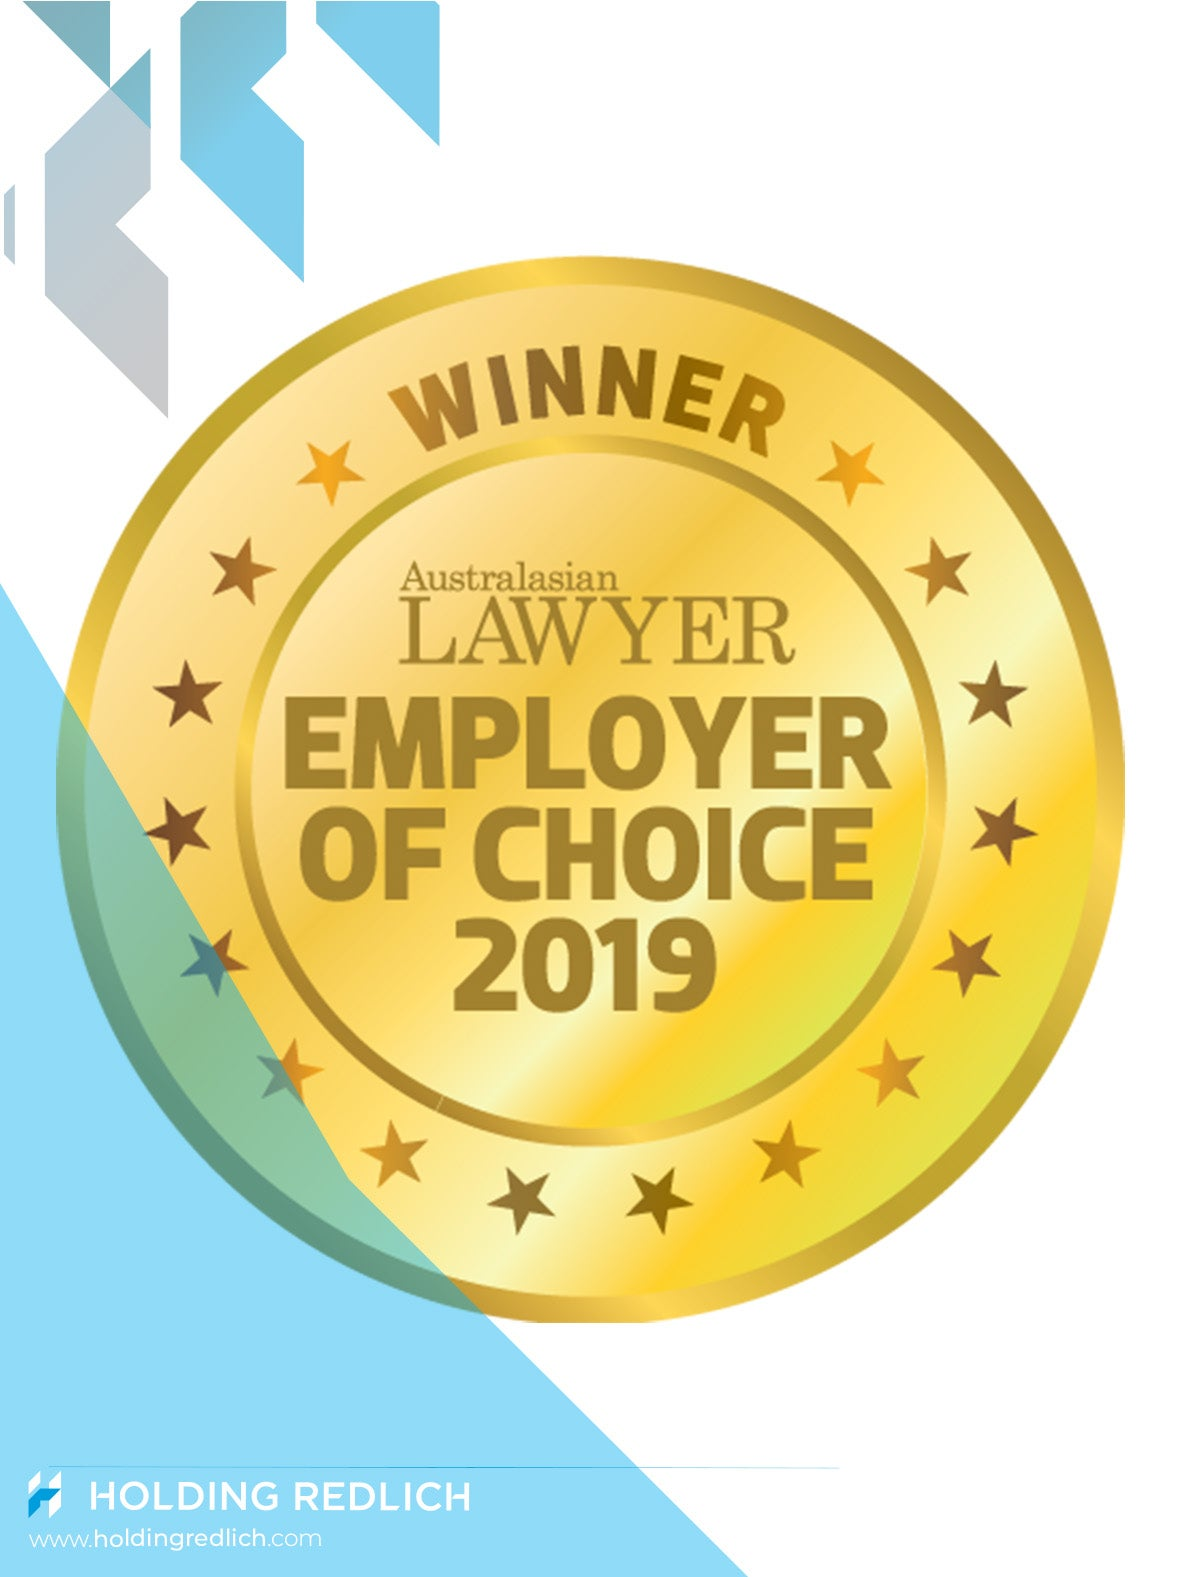 Holding Redlich wins Law Practice of the Year award for support of women in the legal profession